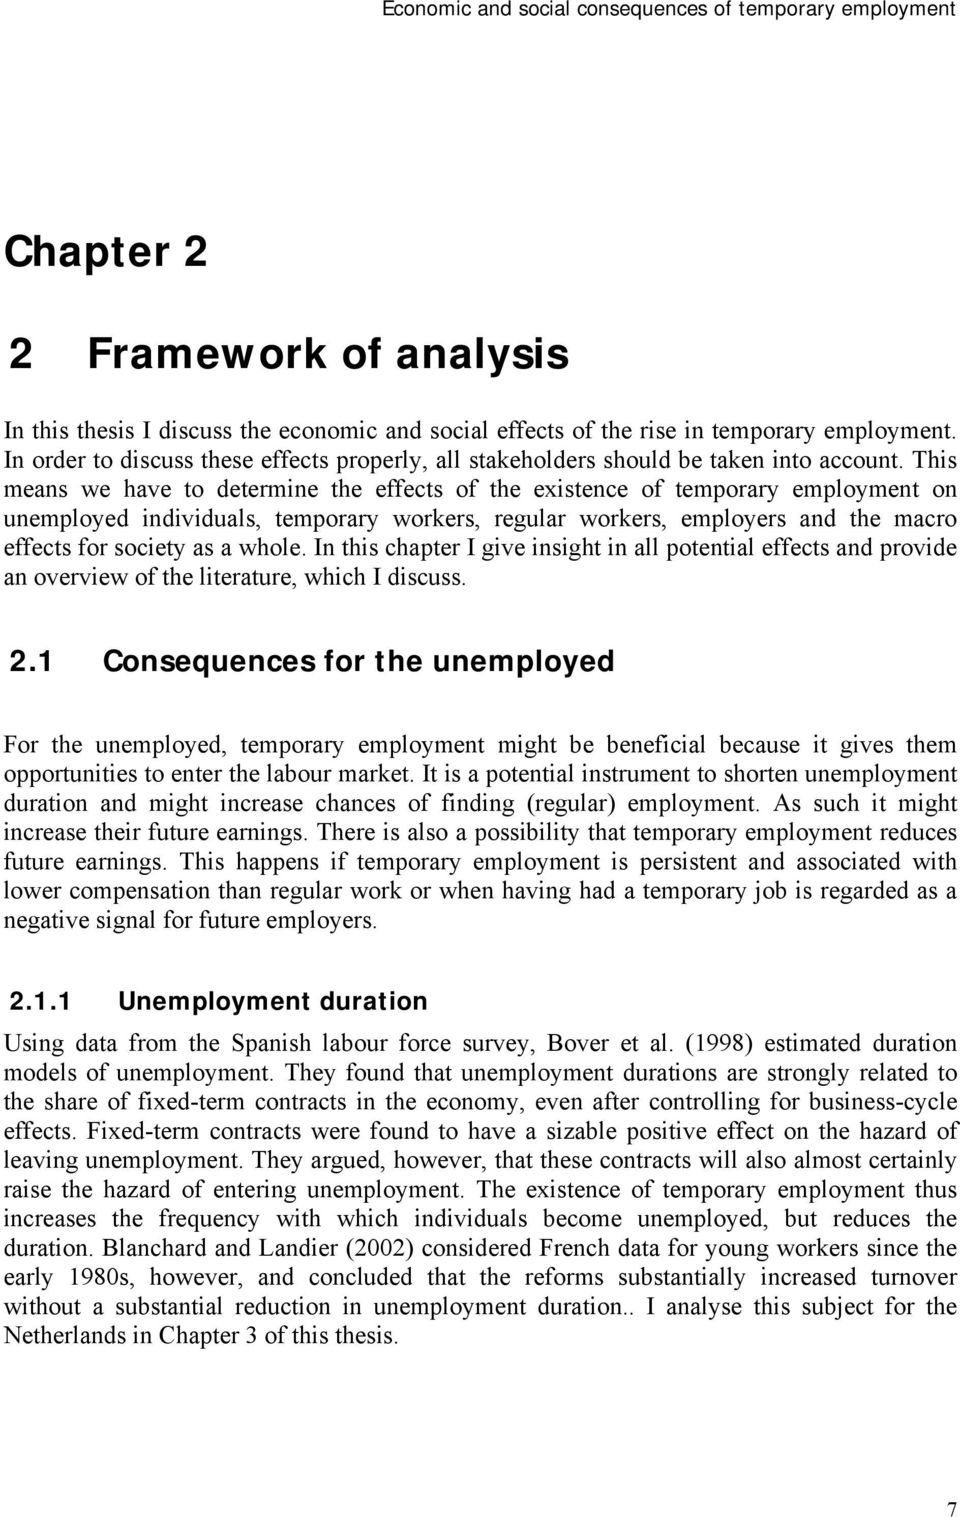 This means we have to determine the effects of the existence of temporary employment on unemployed individuals, temporary workers, regular workers, employers and the macro effects for society as a